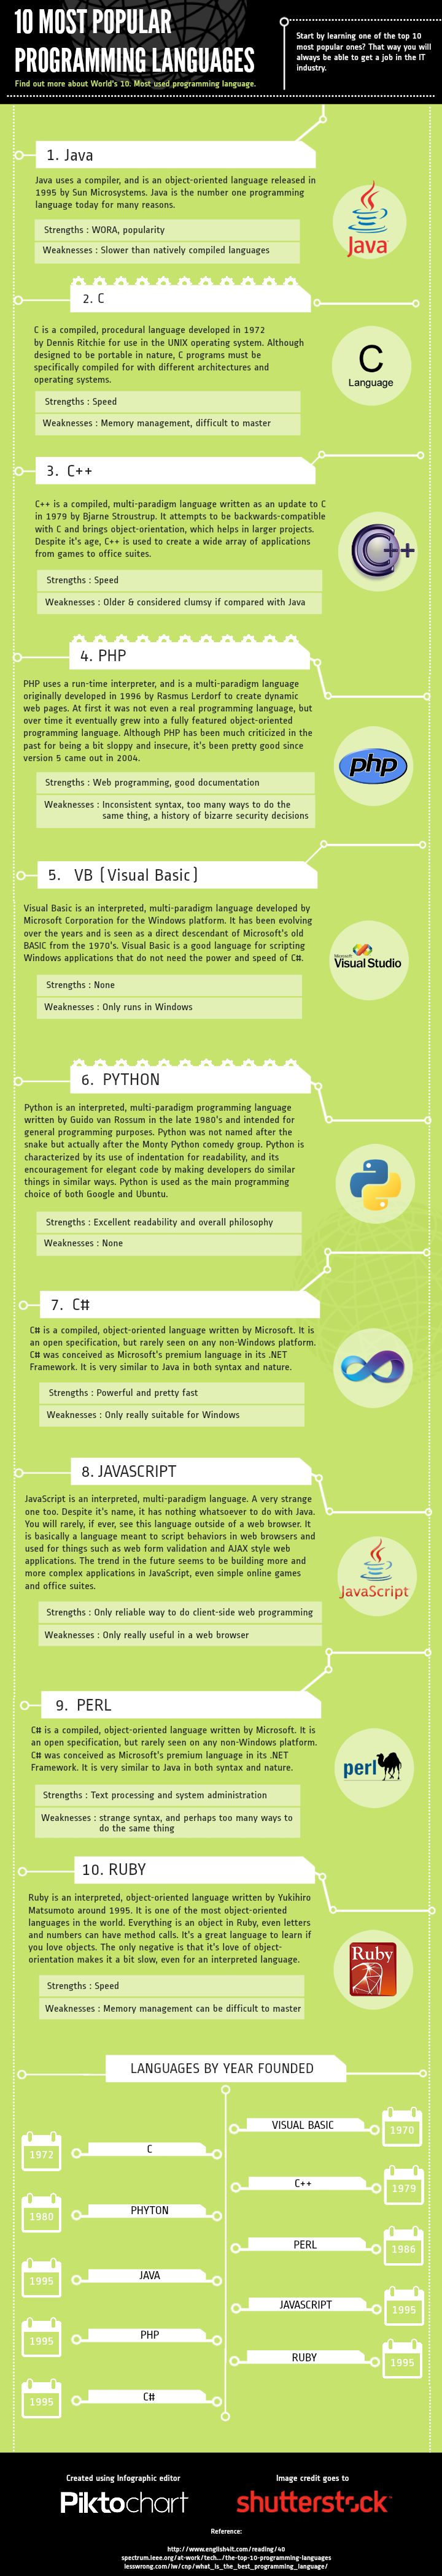 10 Most Popular Programming Languages